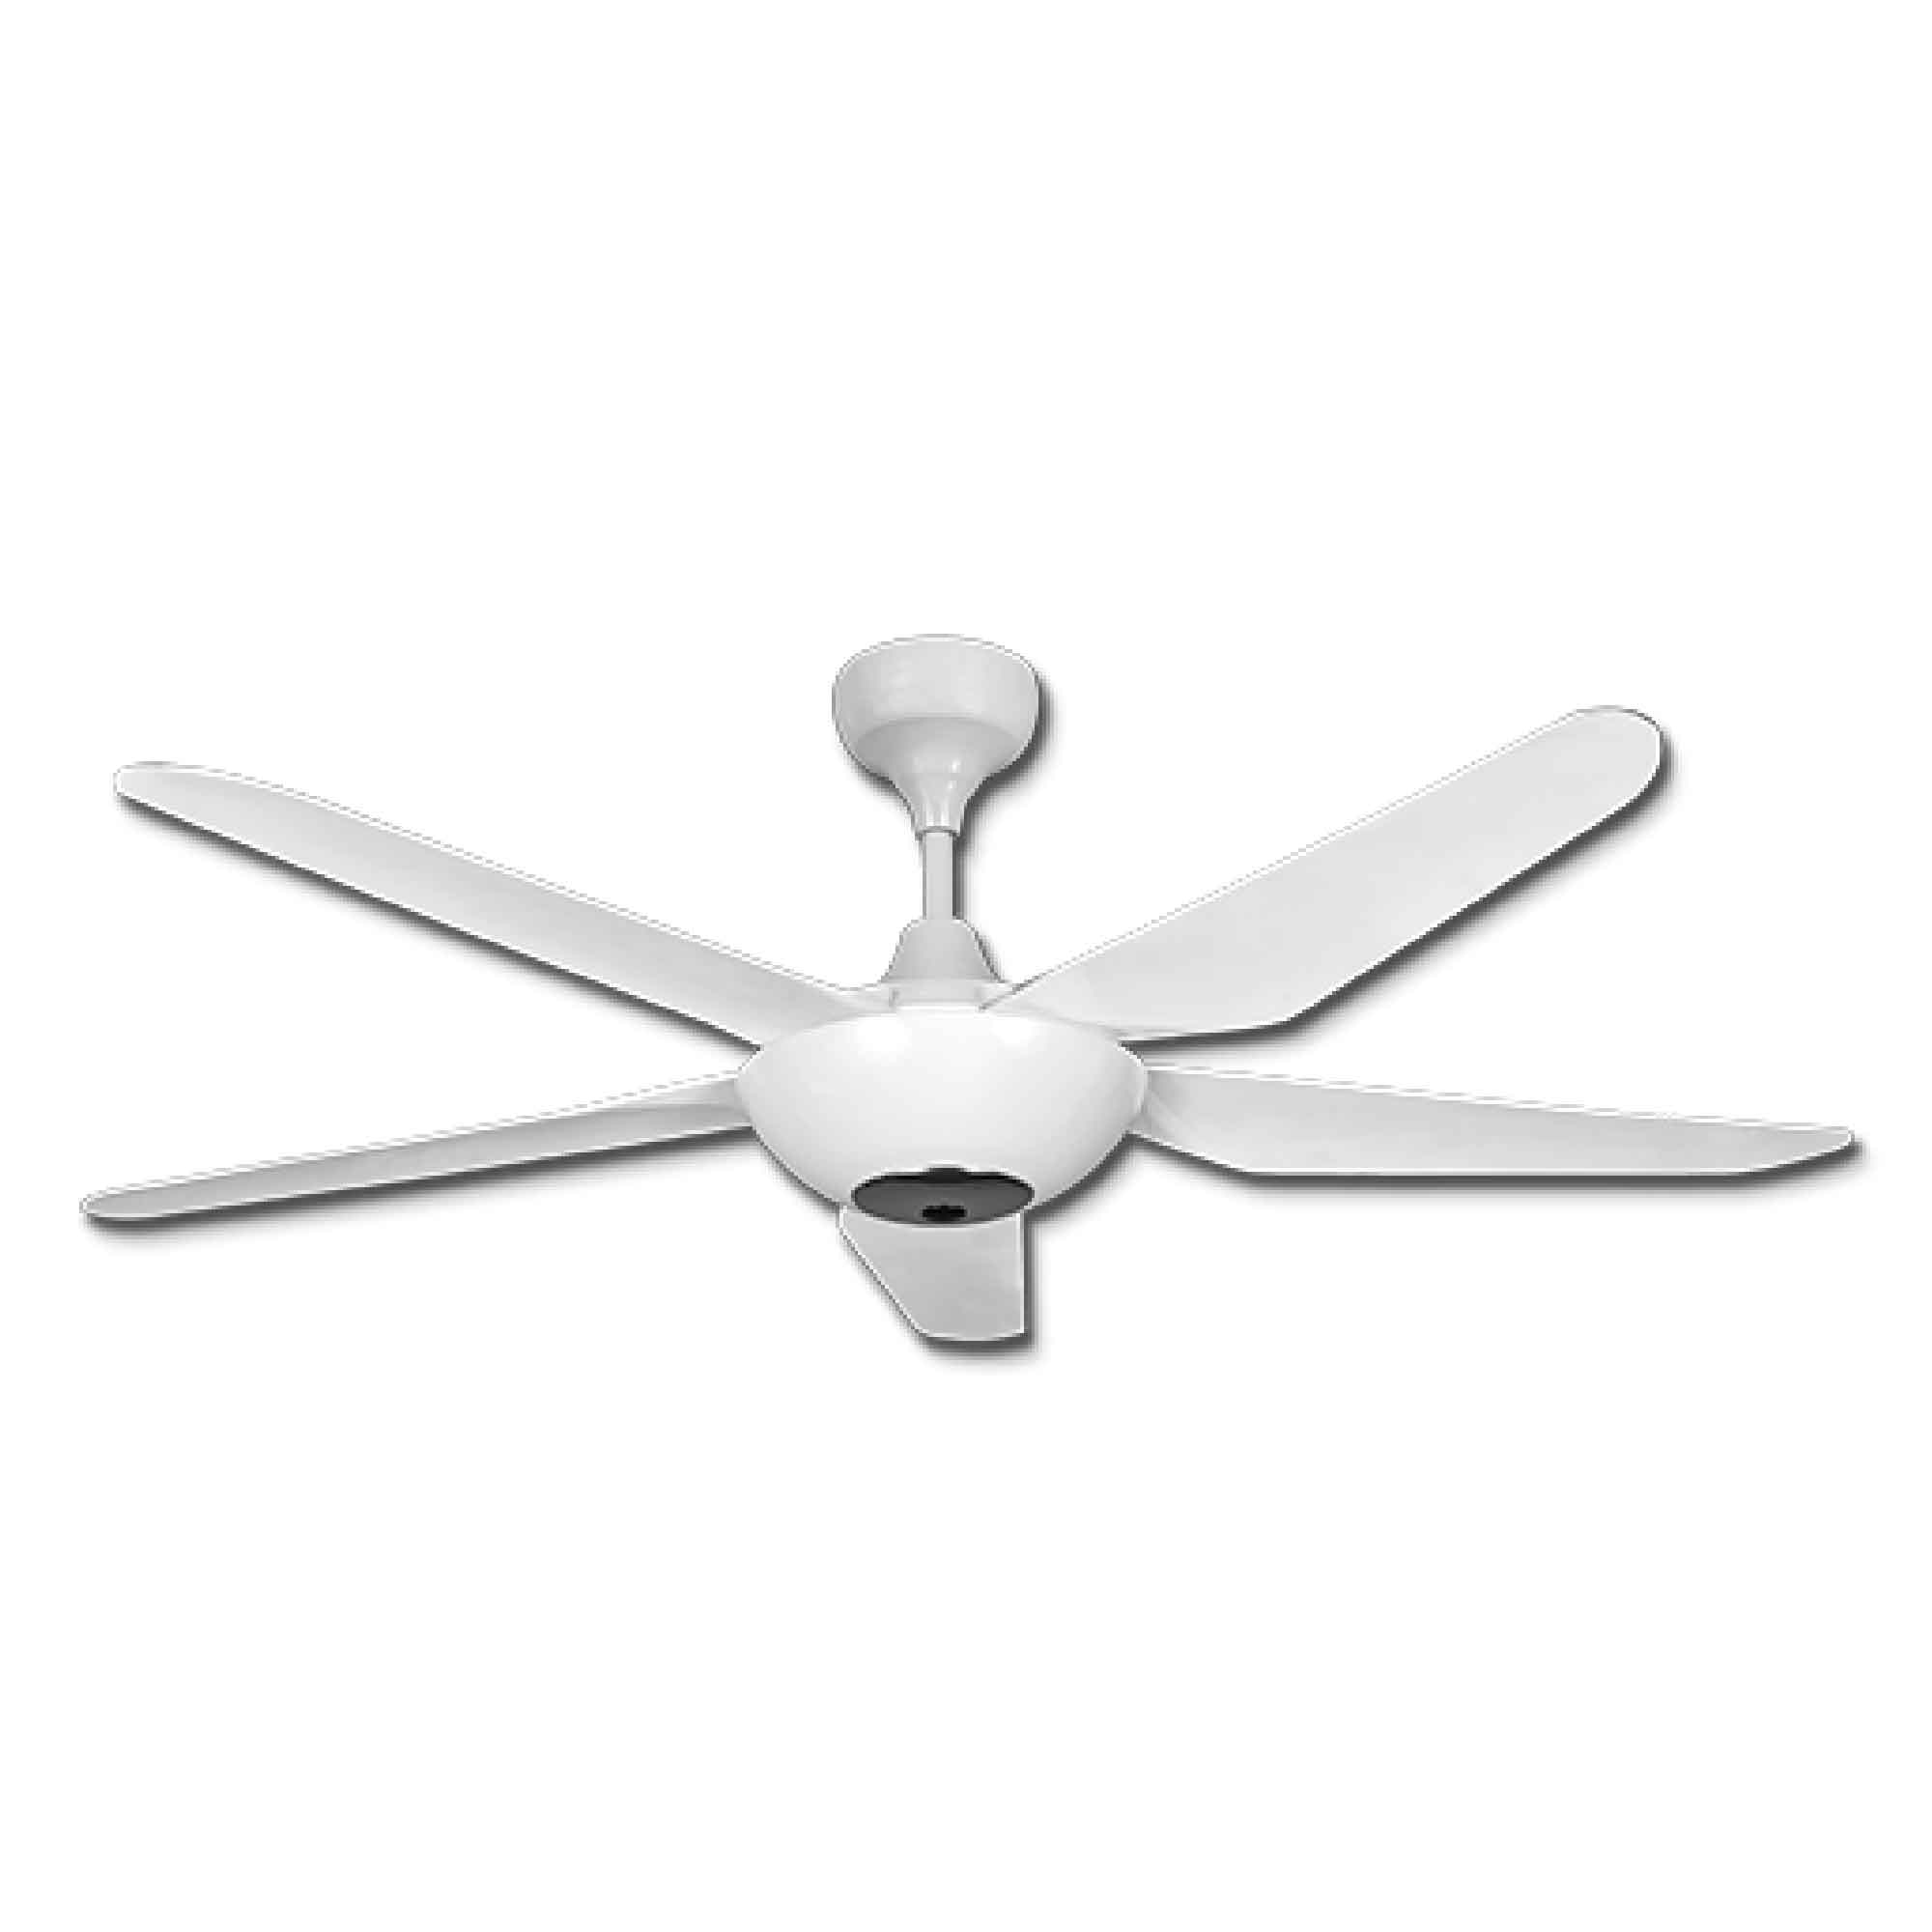 sjkelectrical pm sale blades fan htm with i light deka interchangeable end ceiling